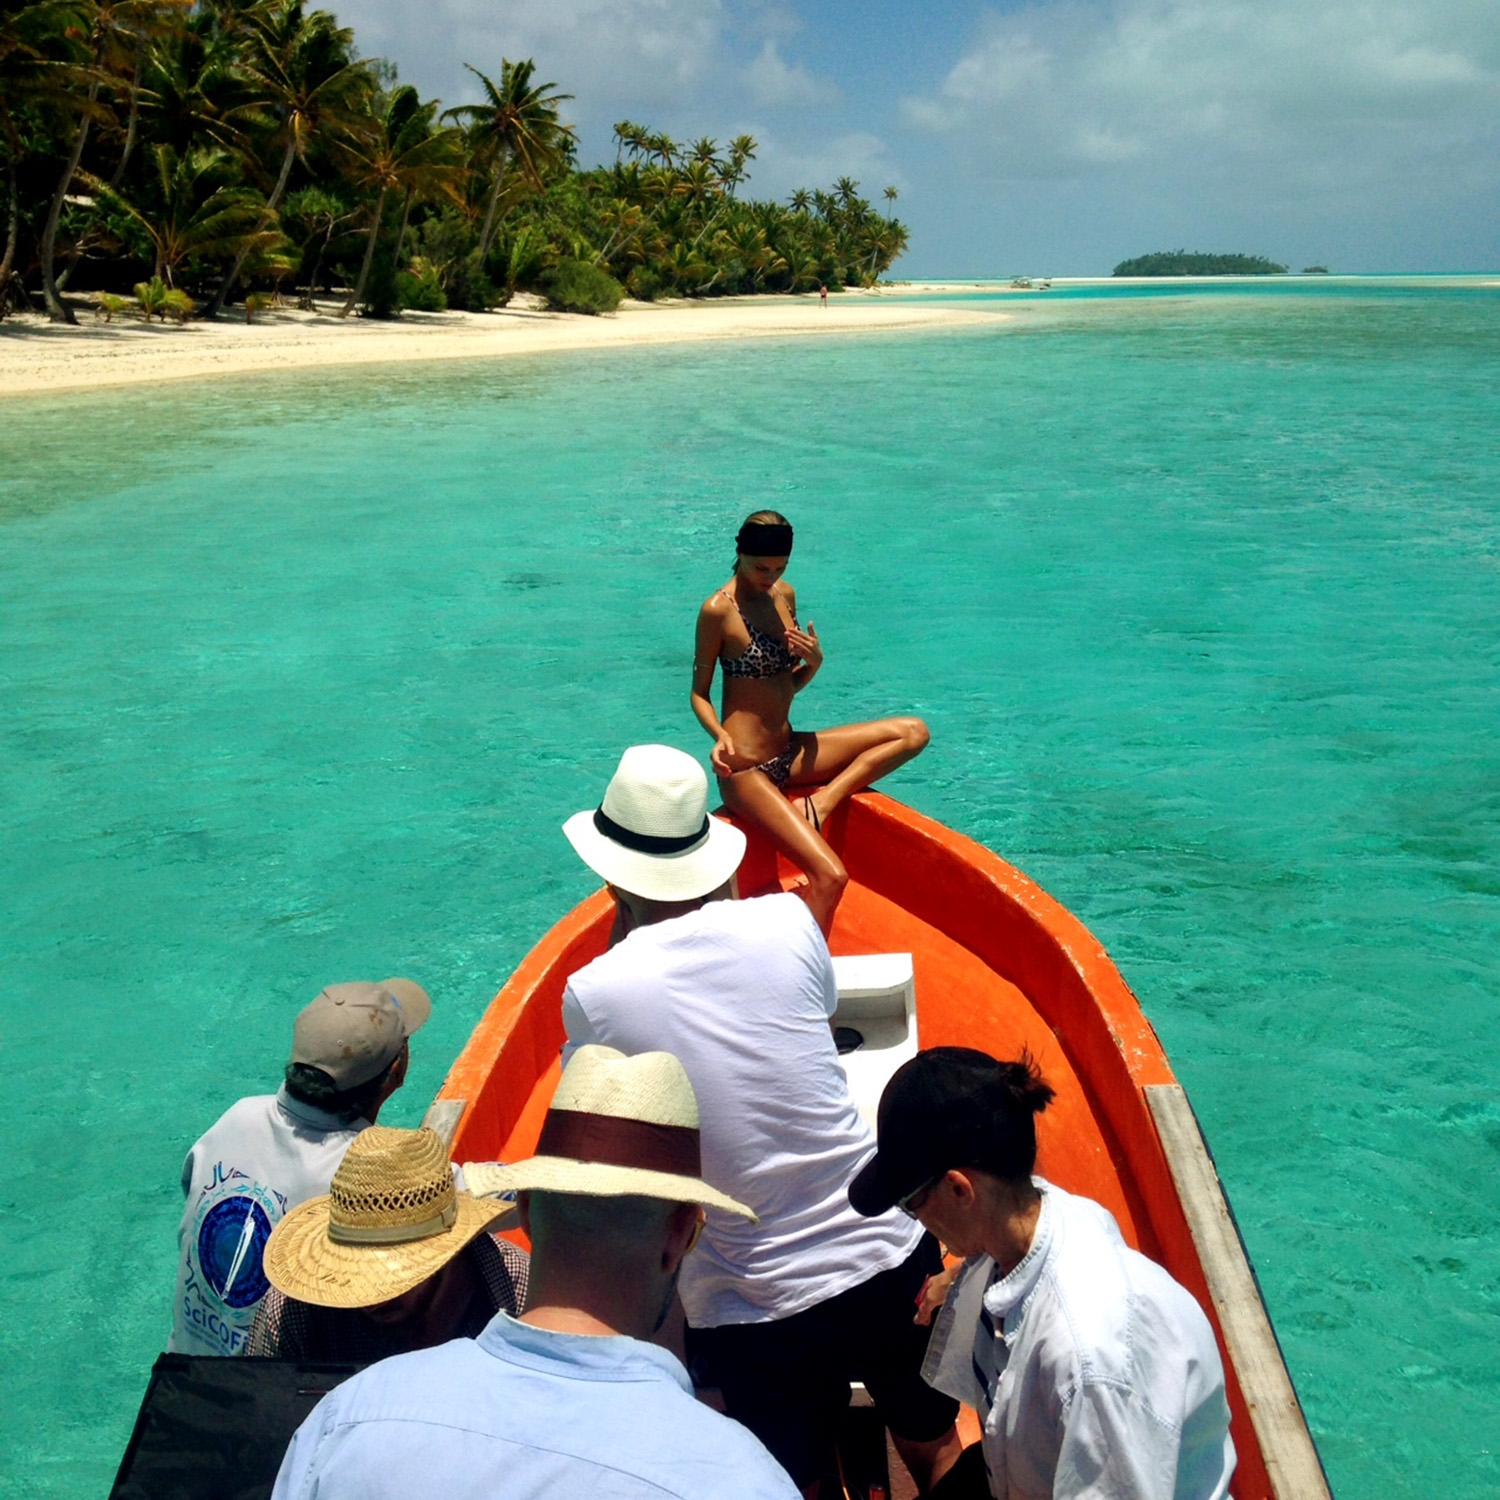 A model perched at the front of a bright orange boat poses for the photographer and team behind. Set within clear blue waters with lush green palm trees clustered along the expansive white sand of the island